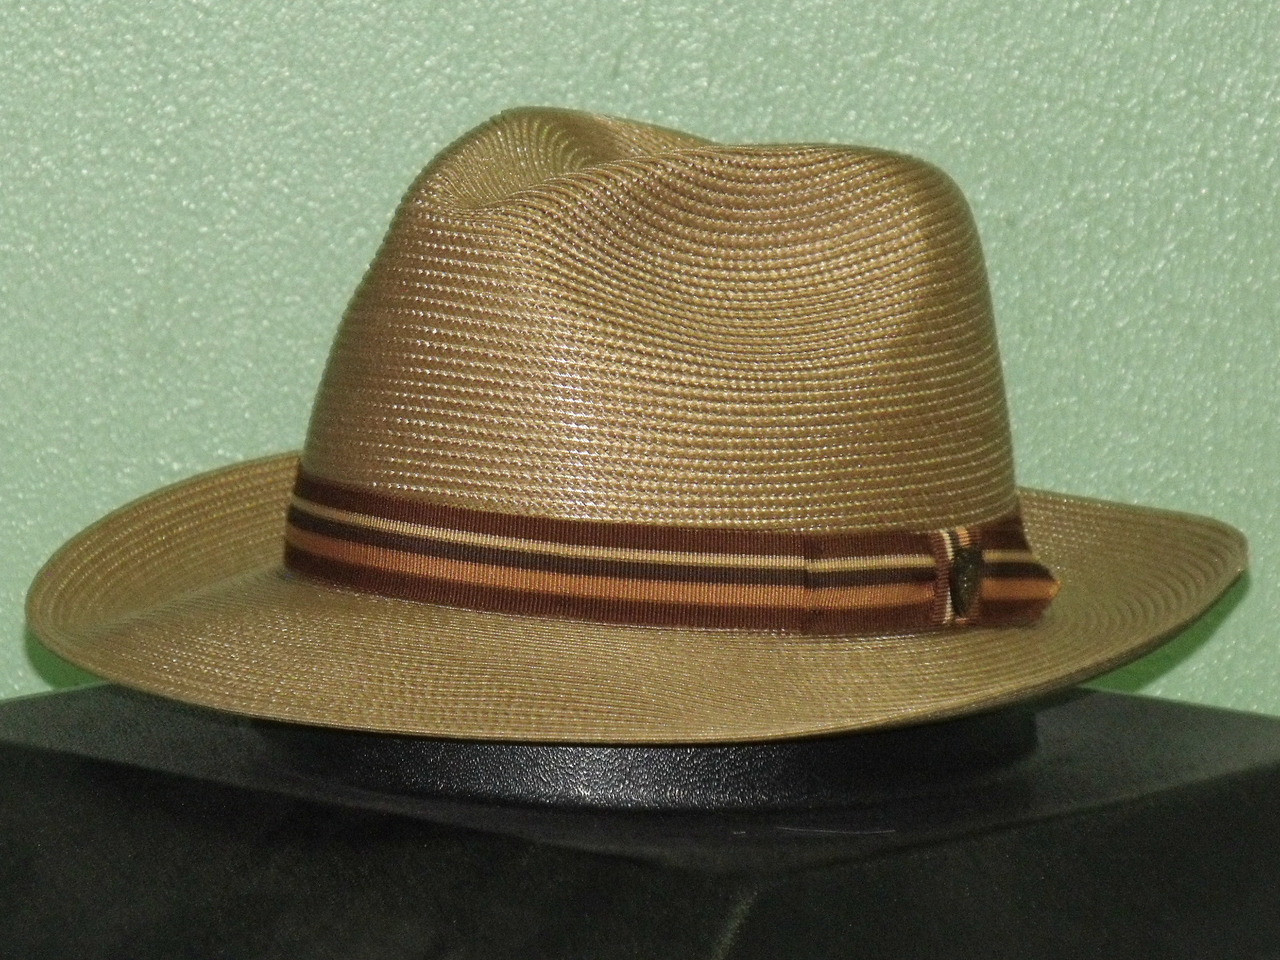 c957736d Dobbs Chilli Florentine Milan Fedora Hat - One 2 mini Ranch